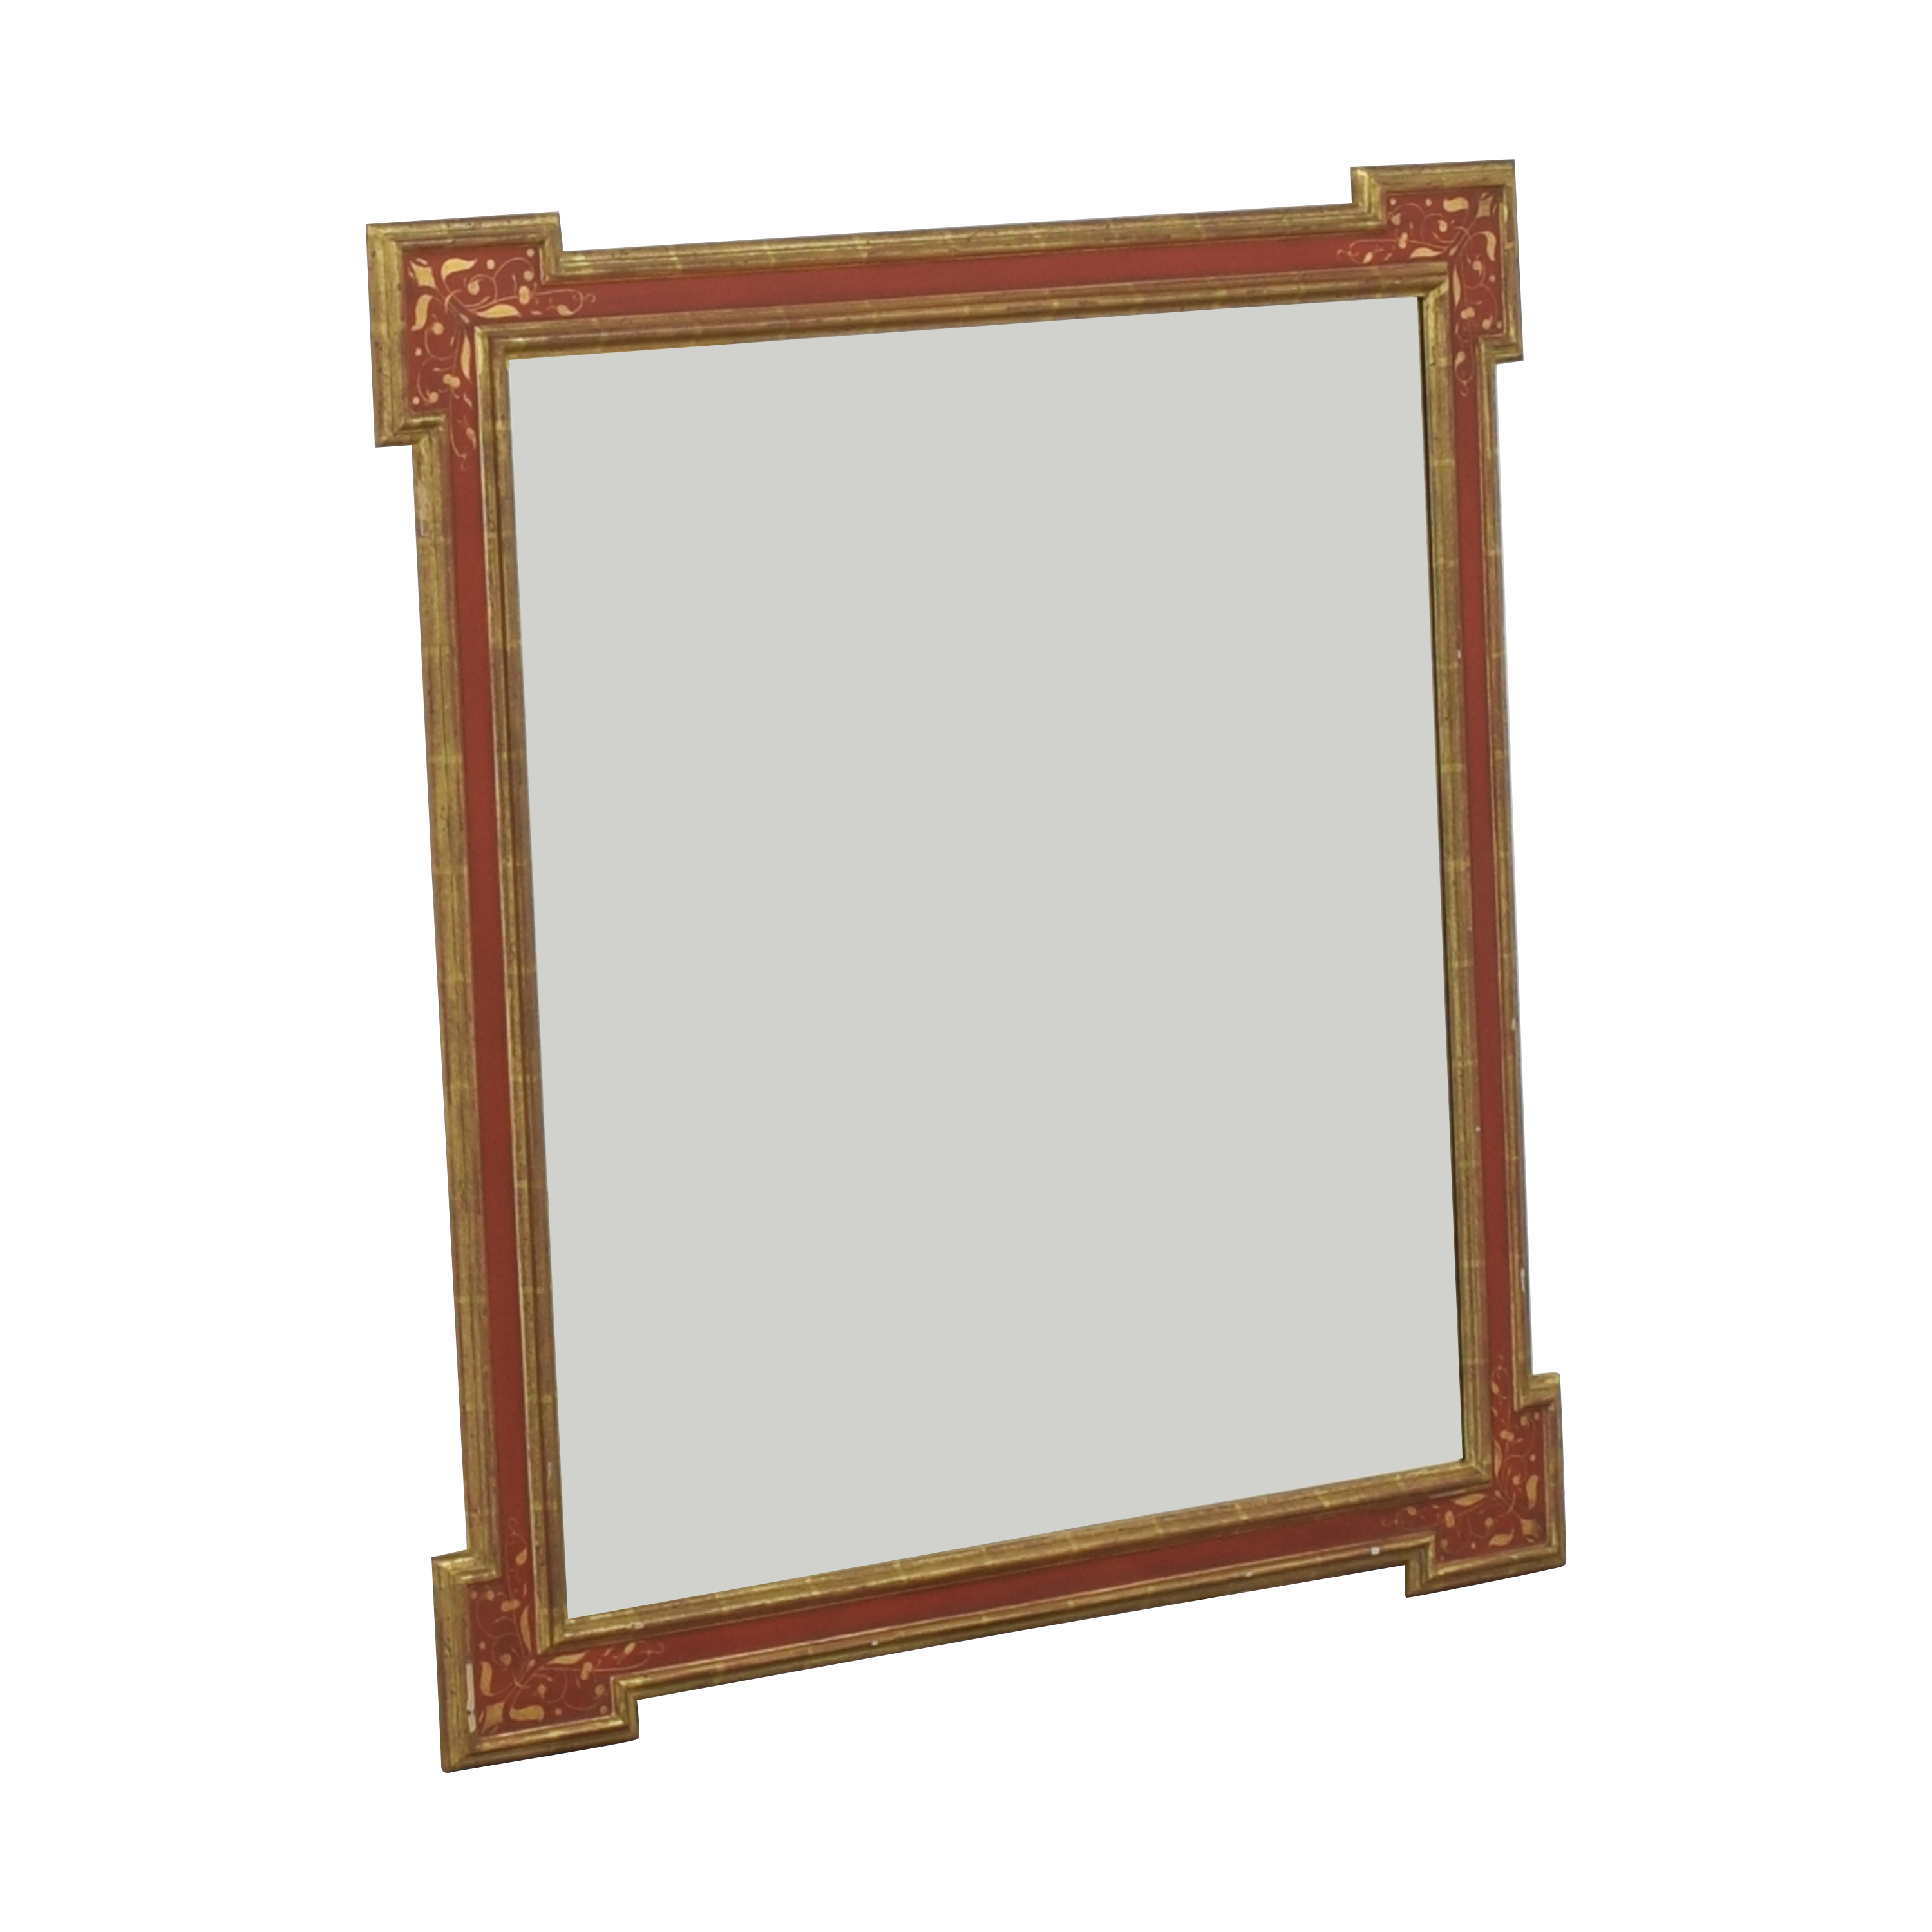 Summa Gallery Decorative Framed Wall Mirror sale